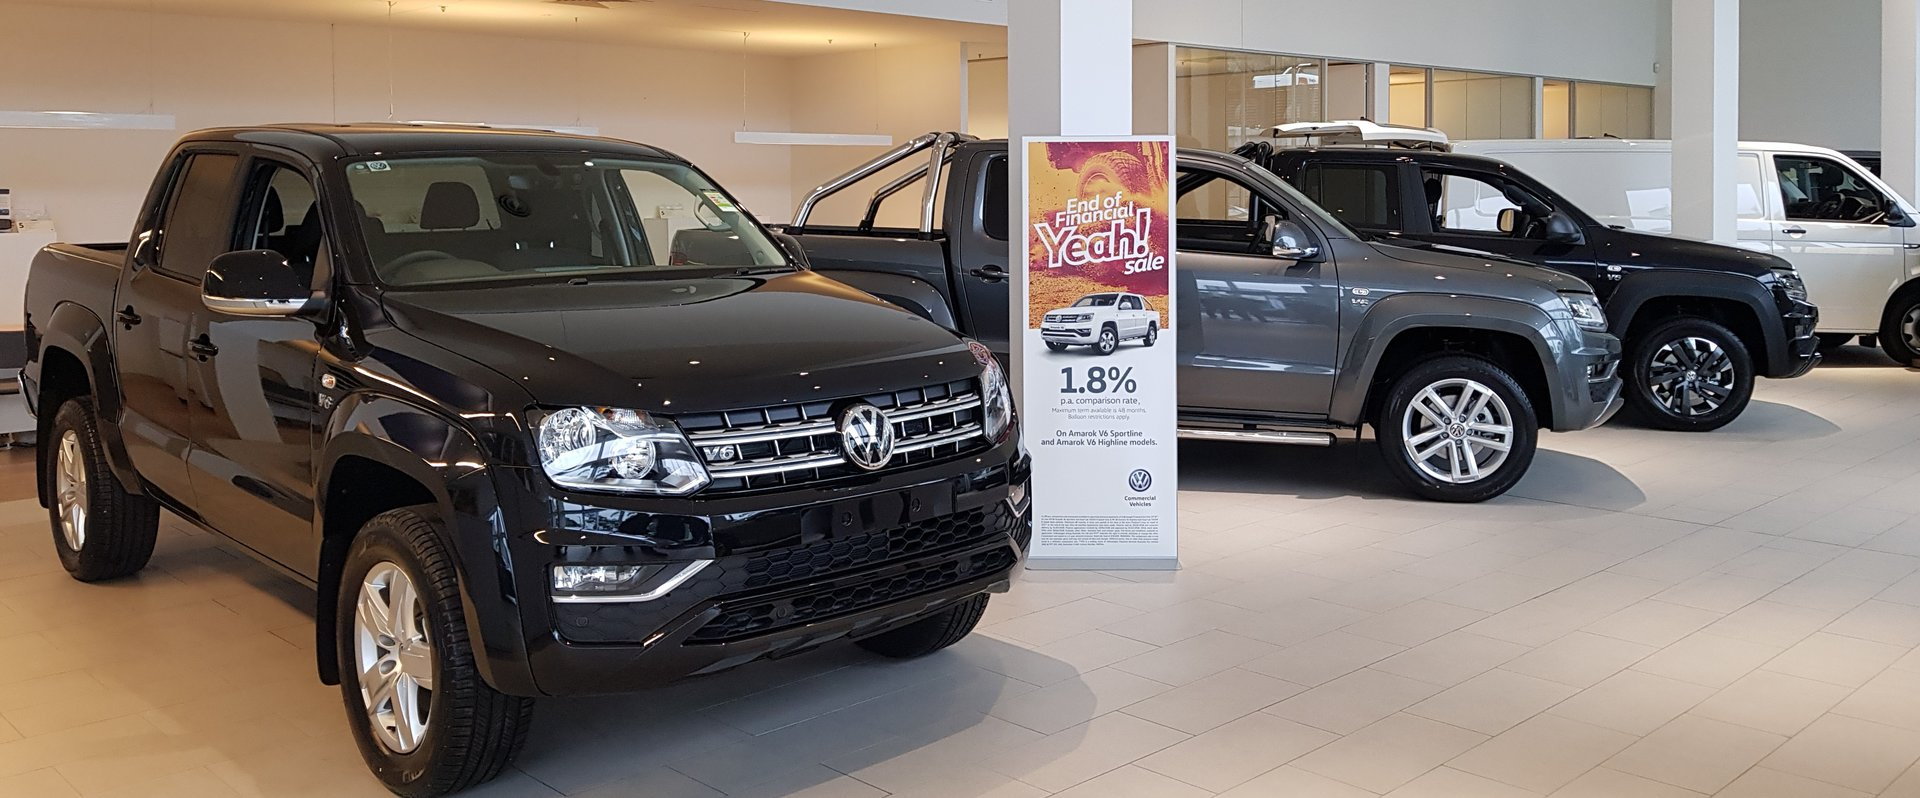 We have Amarok V6 Sportline and Amarok V6 Highline in stock immediate delivery